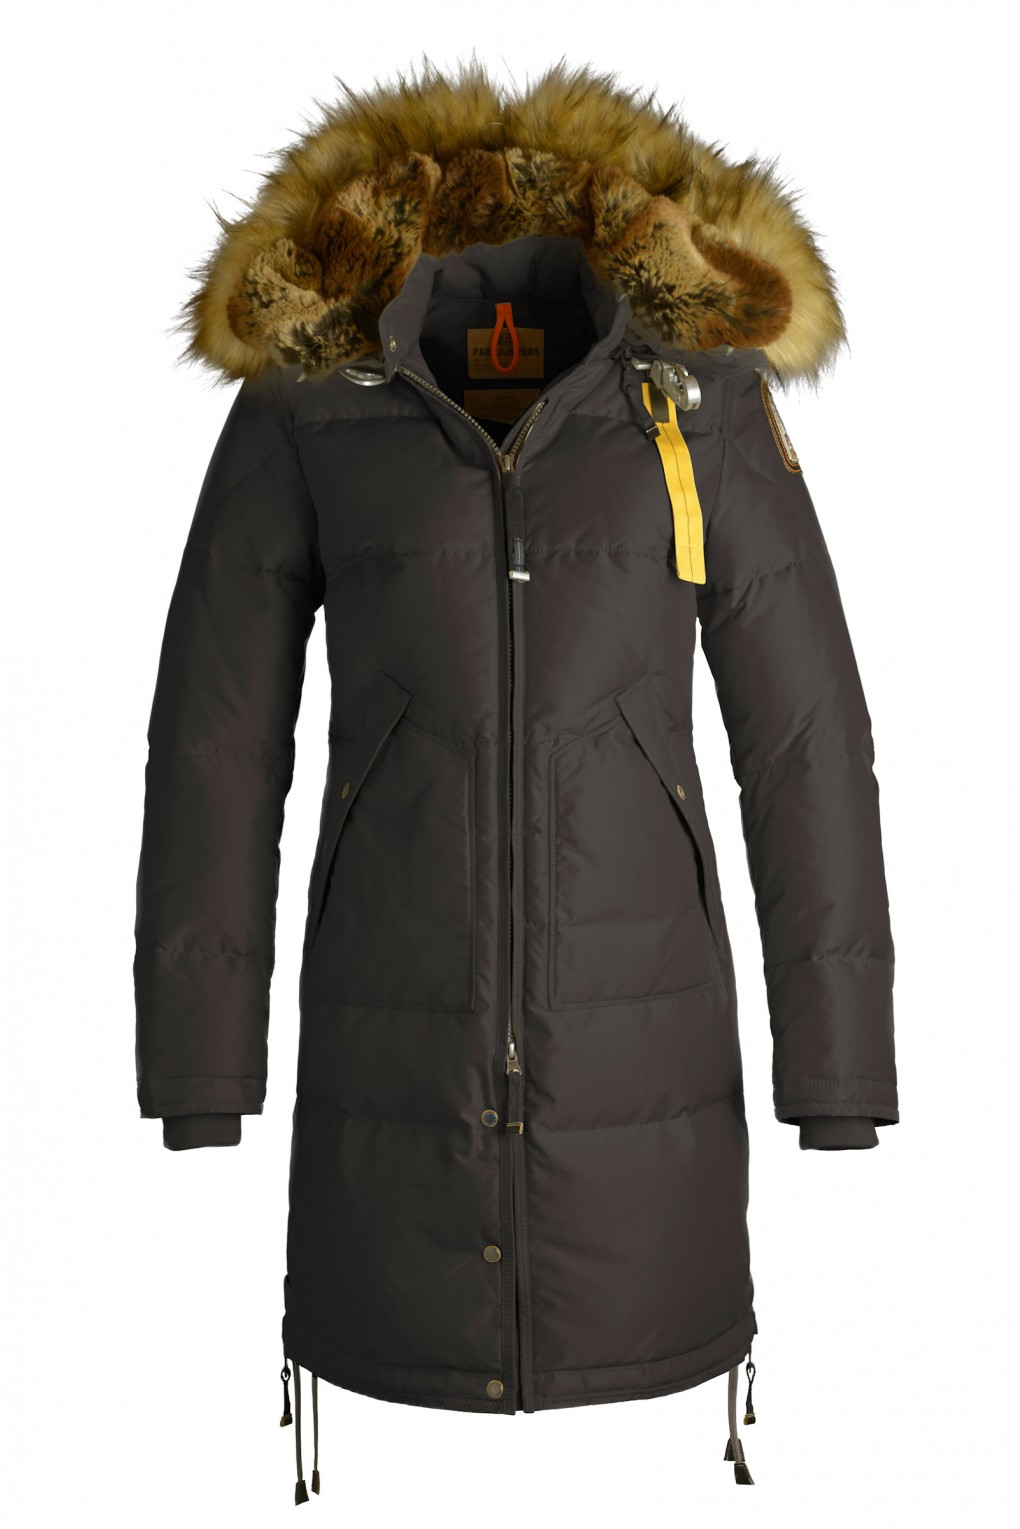 parajumpers LONG BEAR ECO woman outerwear Brown